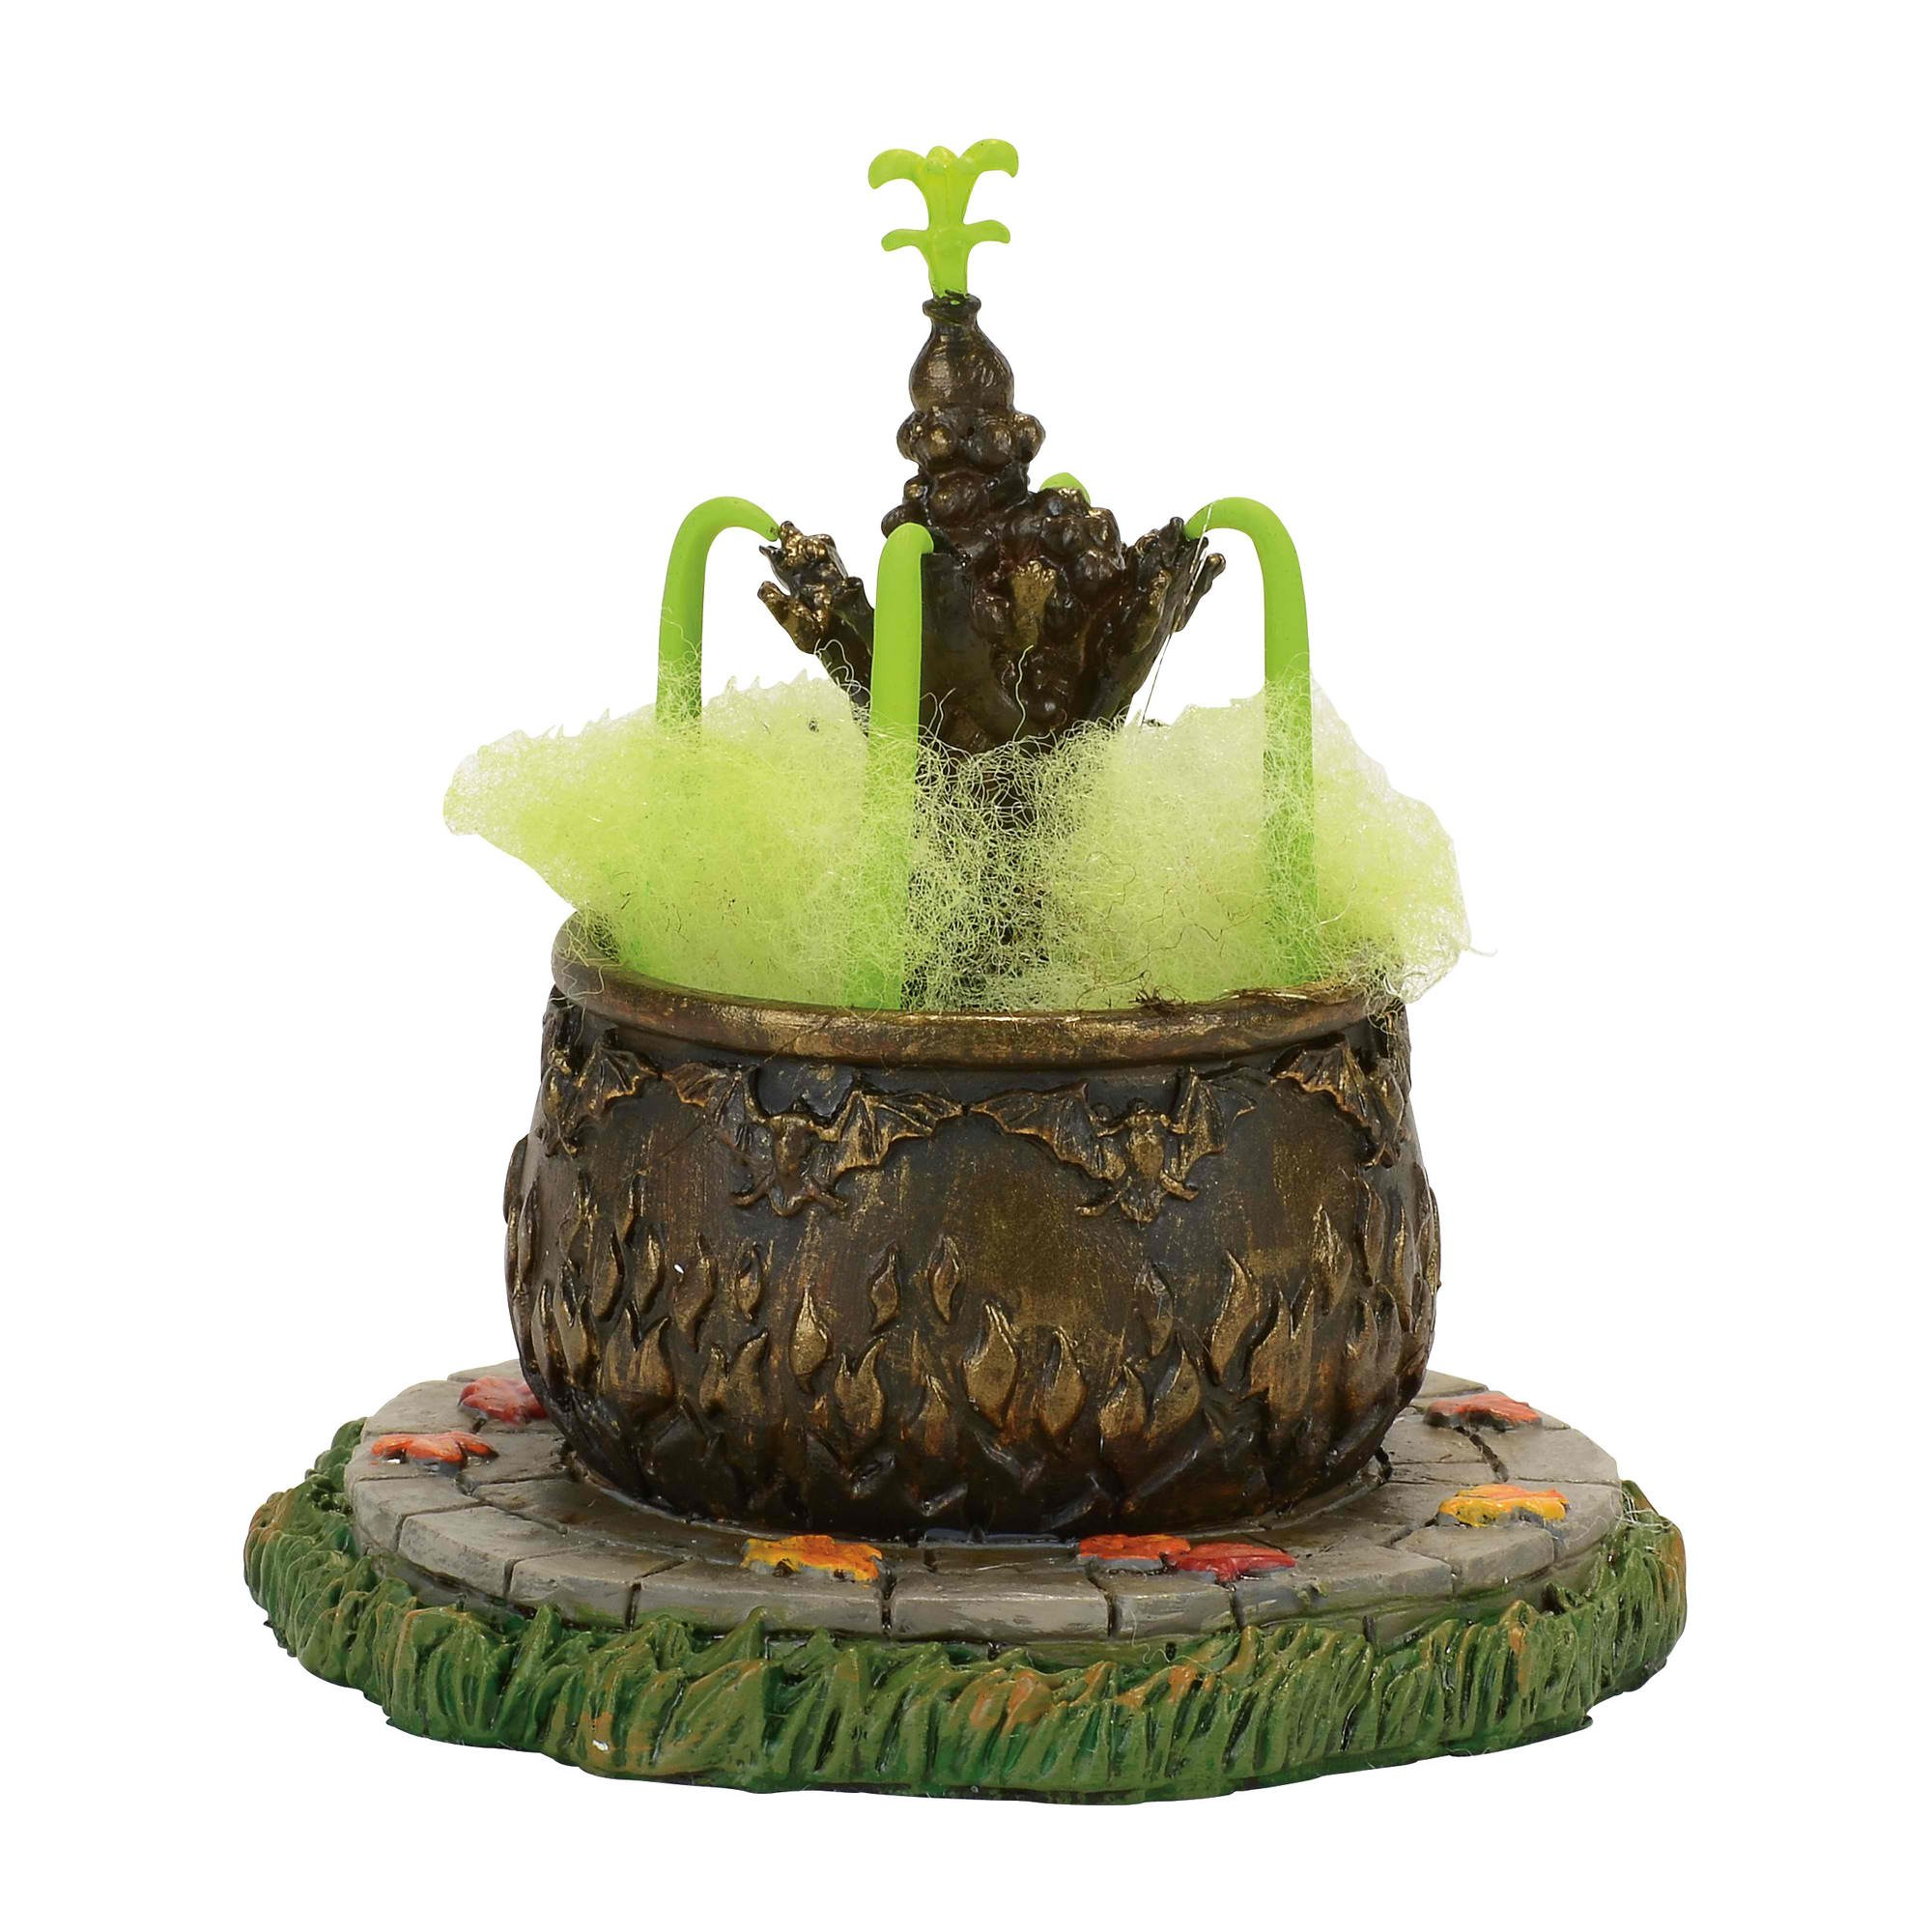 Department 56 Accessories for Villages Halloween Toad Fountain Figurine (4057616)